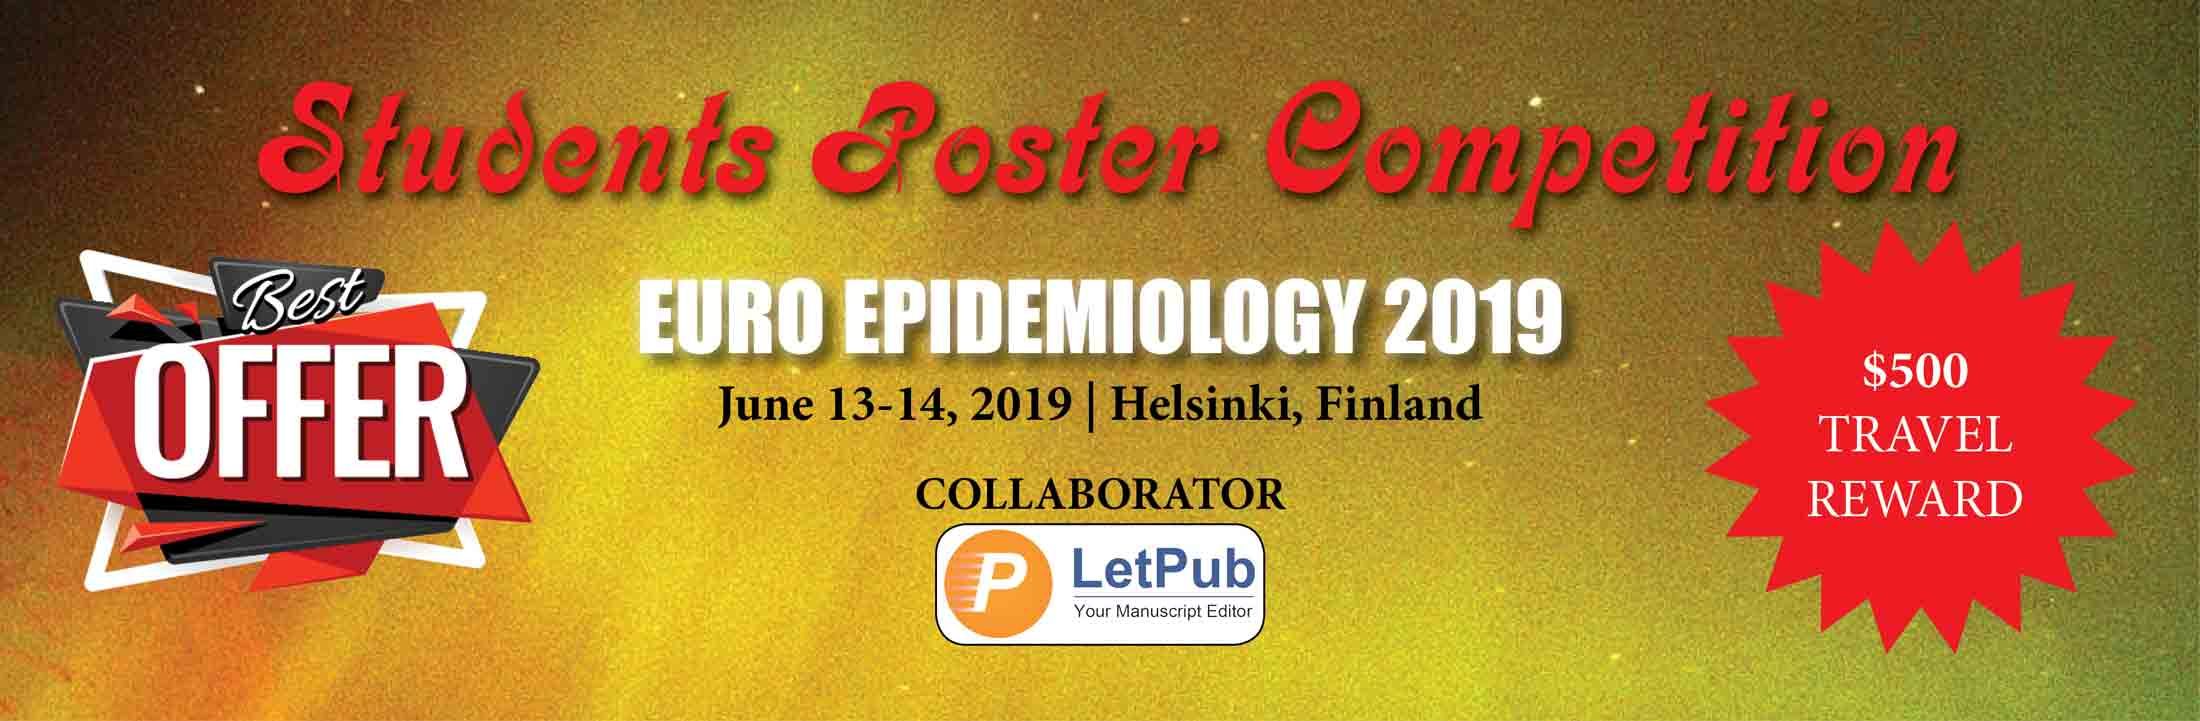 Epidemiology Events 2019 | Public Health Conferences